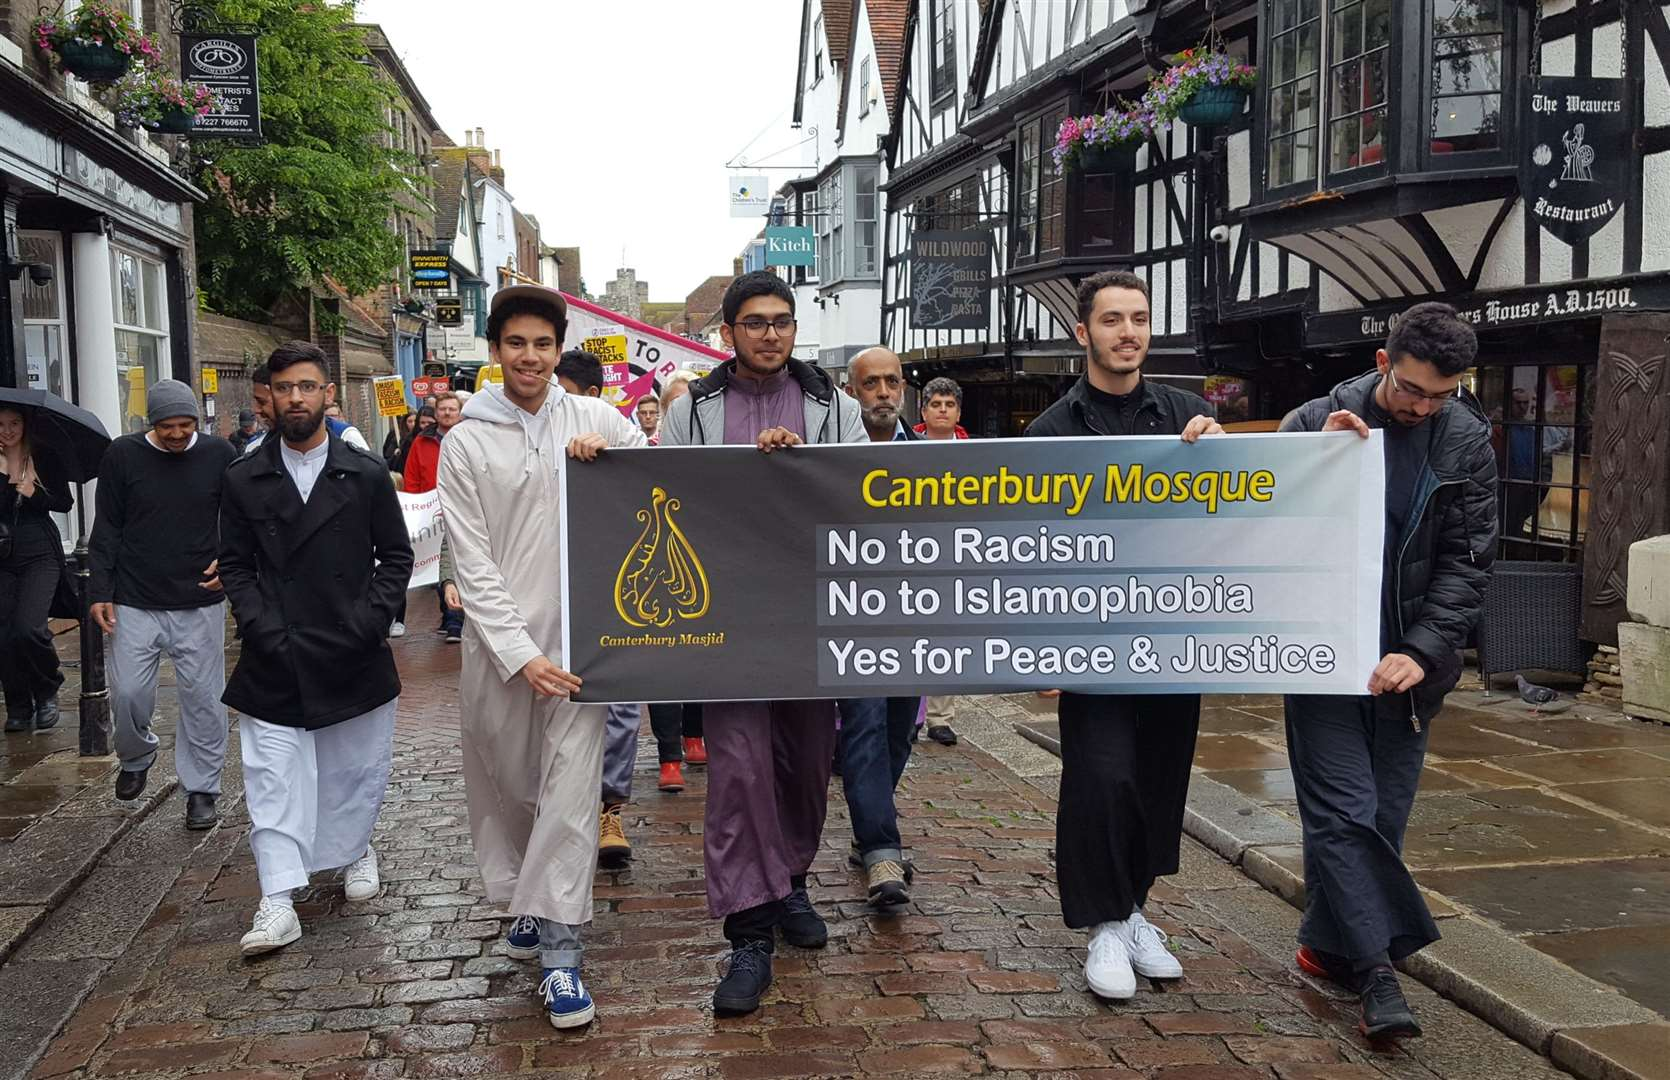 Representatives from Canterbury Mosque march along the high street